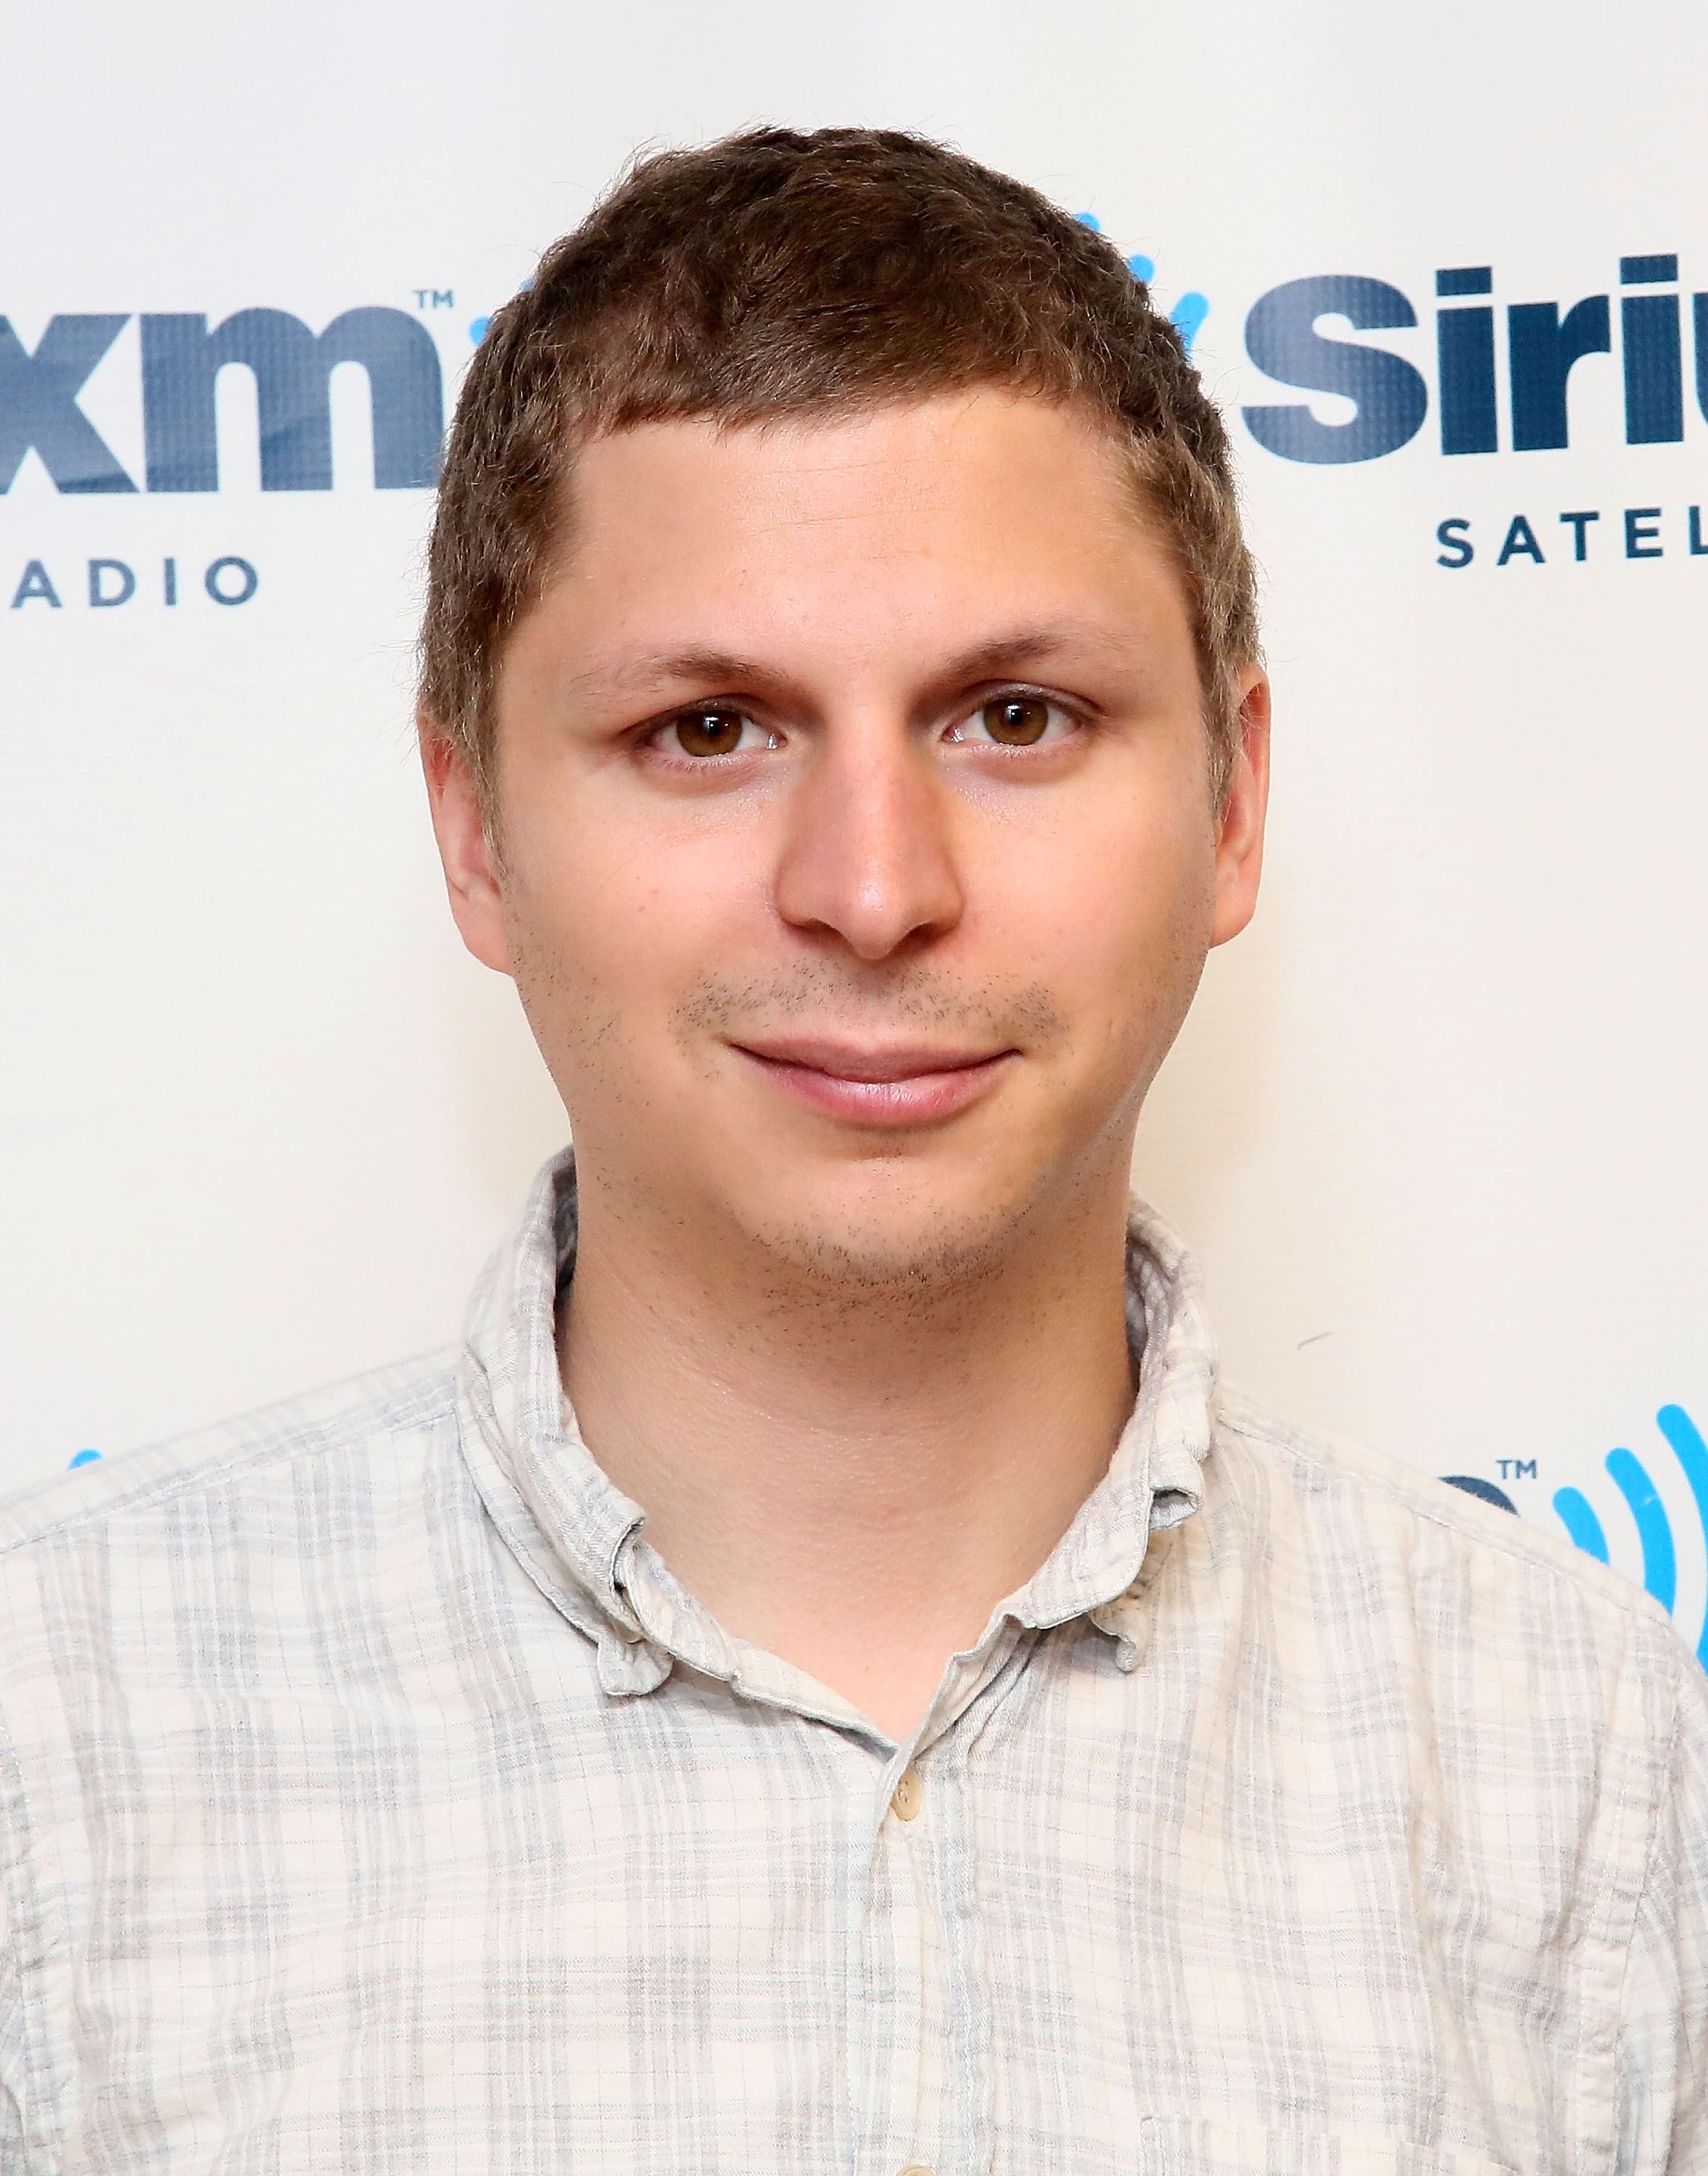 Michael Cera Hairstyle [ img] zsscdcw | Michael cera, Hair styles ...